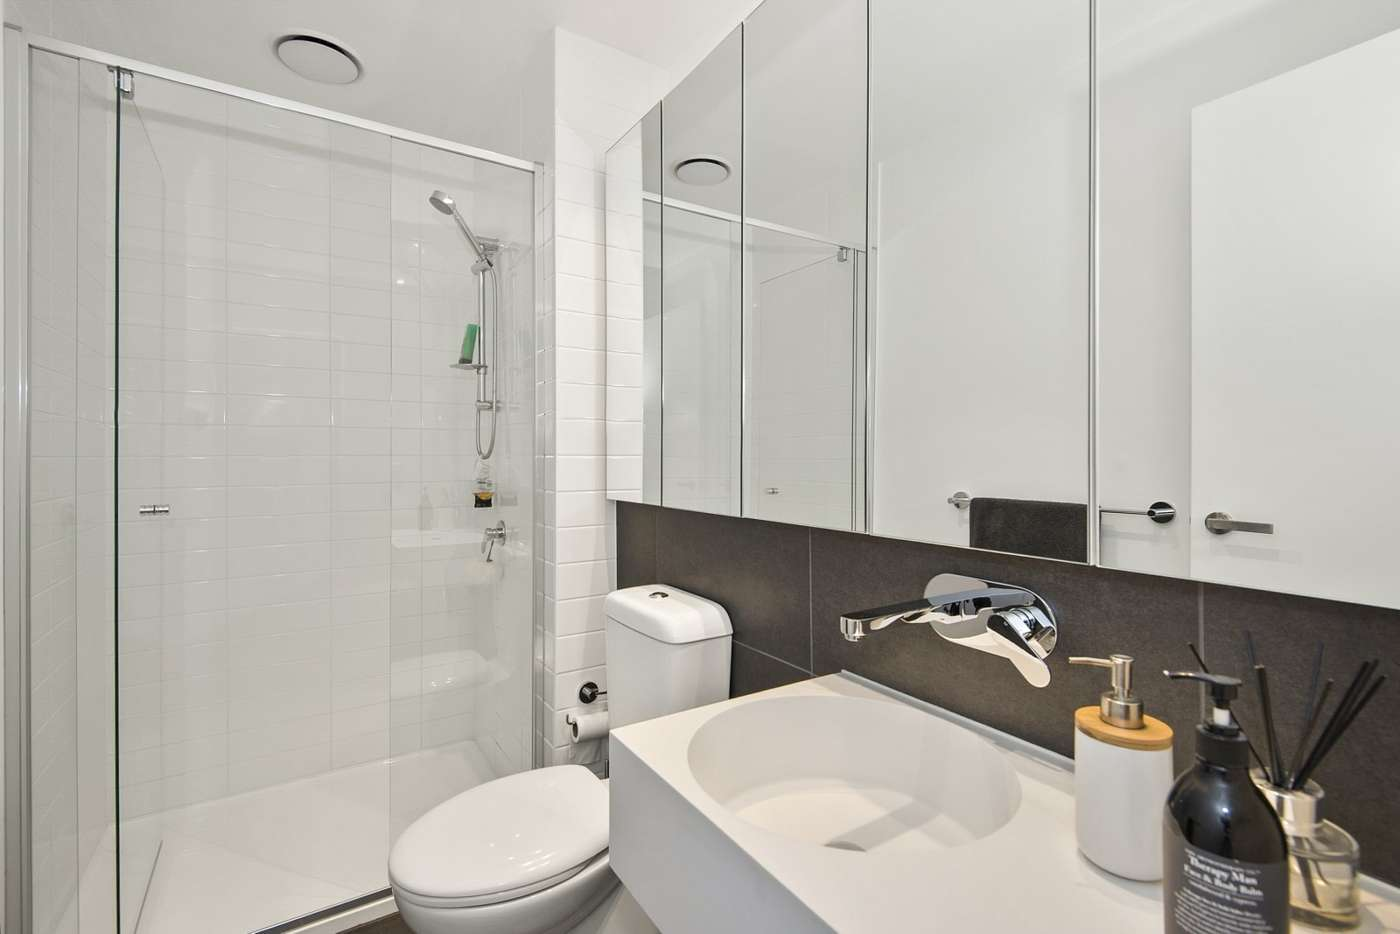 Fifth view of Homely apartment listing, 206/33 Rose Lane, Melbourne VIC 3000